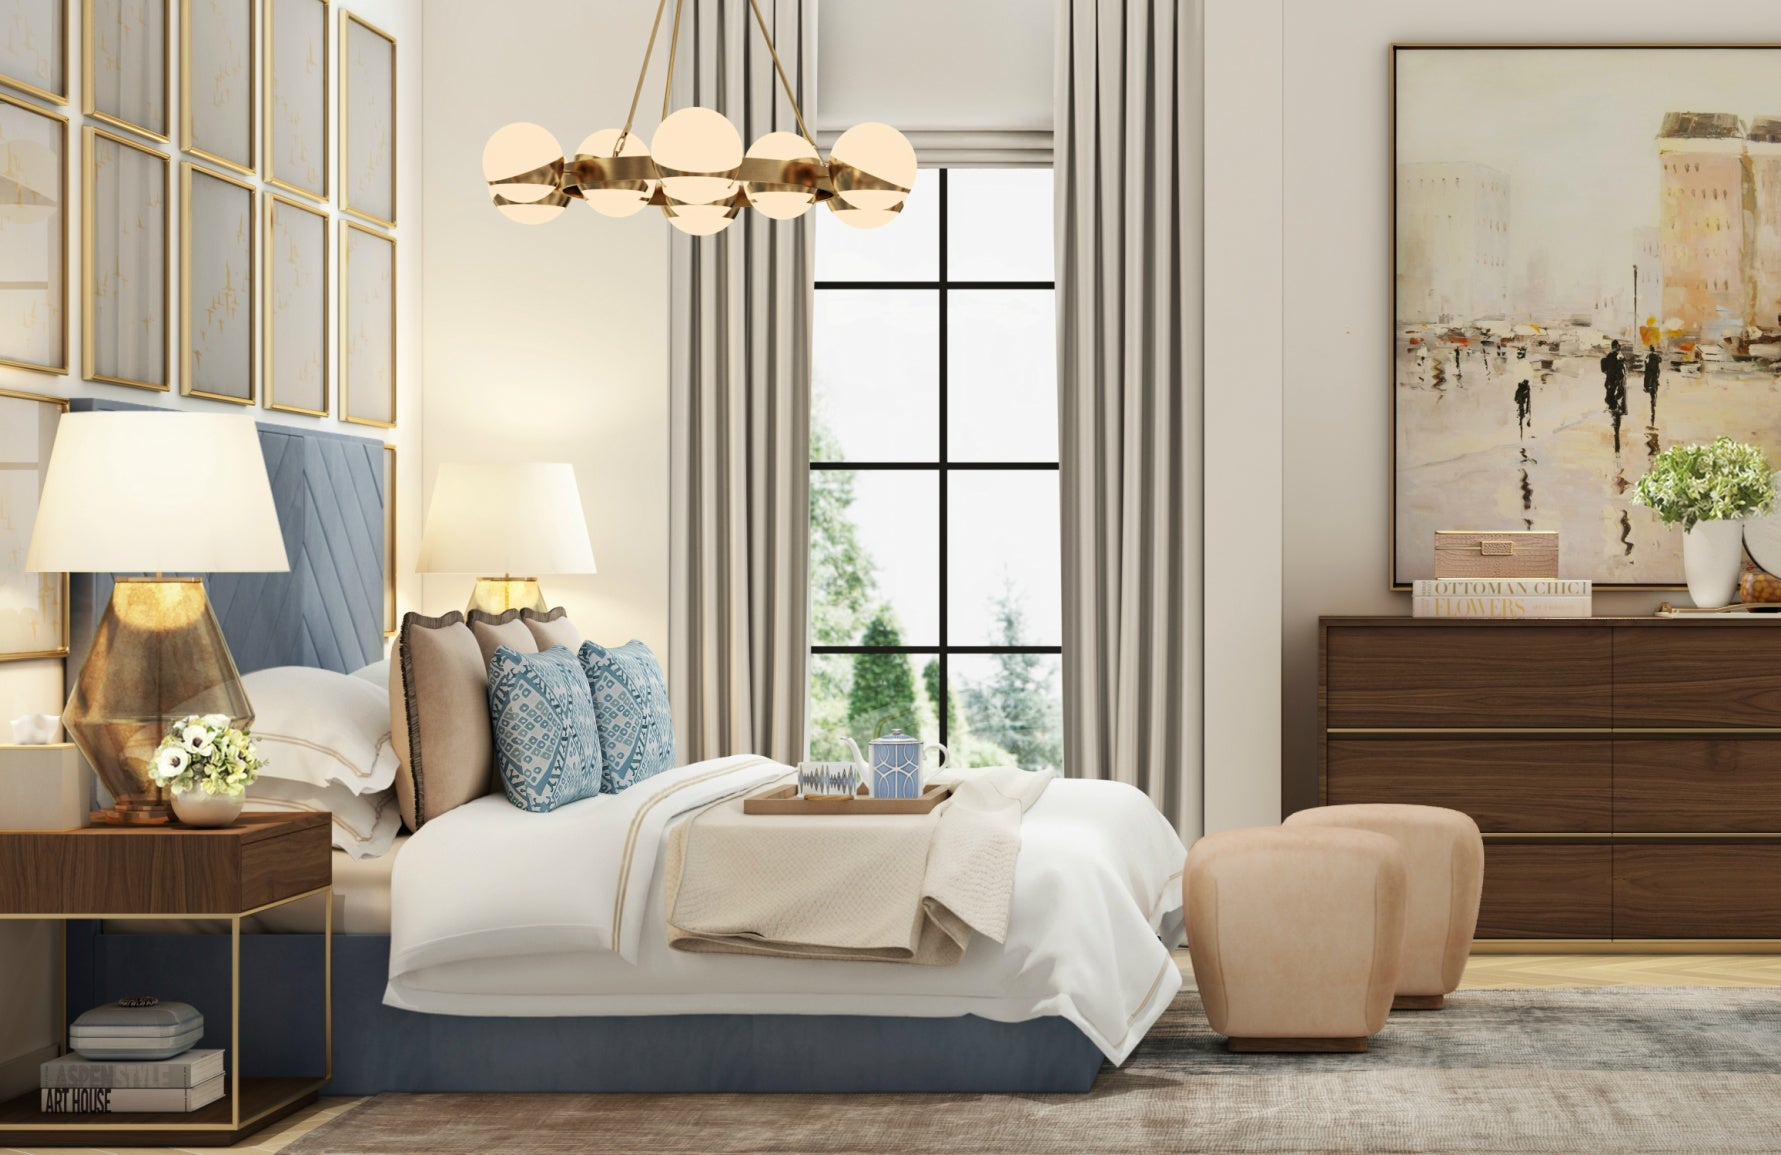 Get The Look | Wimbledon Collection | Luxury Bedroom Design | Shop the look at LuxDeco.com